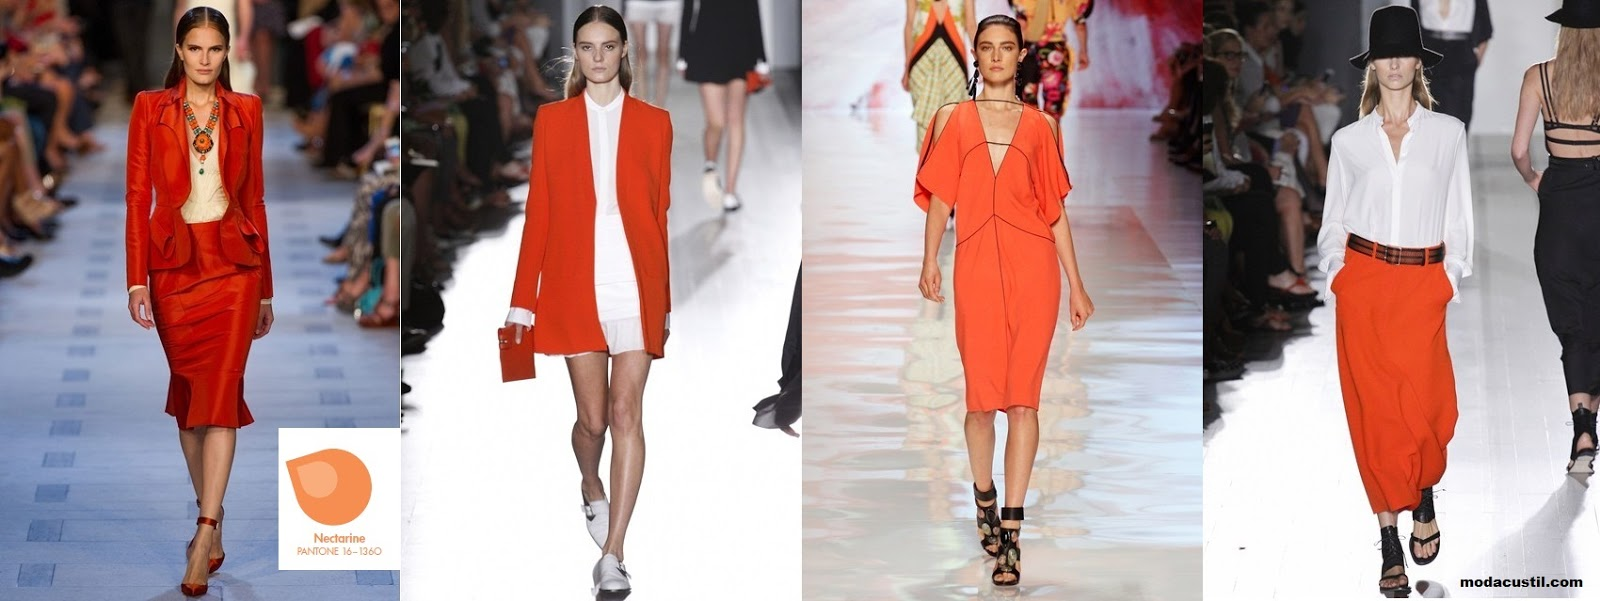 Nectarine - Colors Spring Summer 2013 Fashion